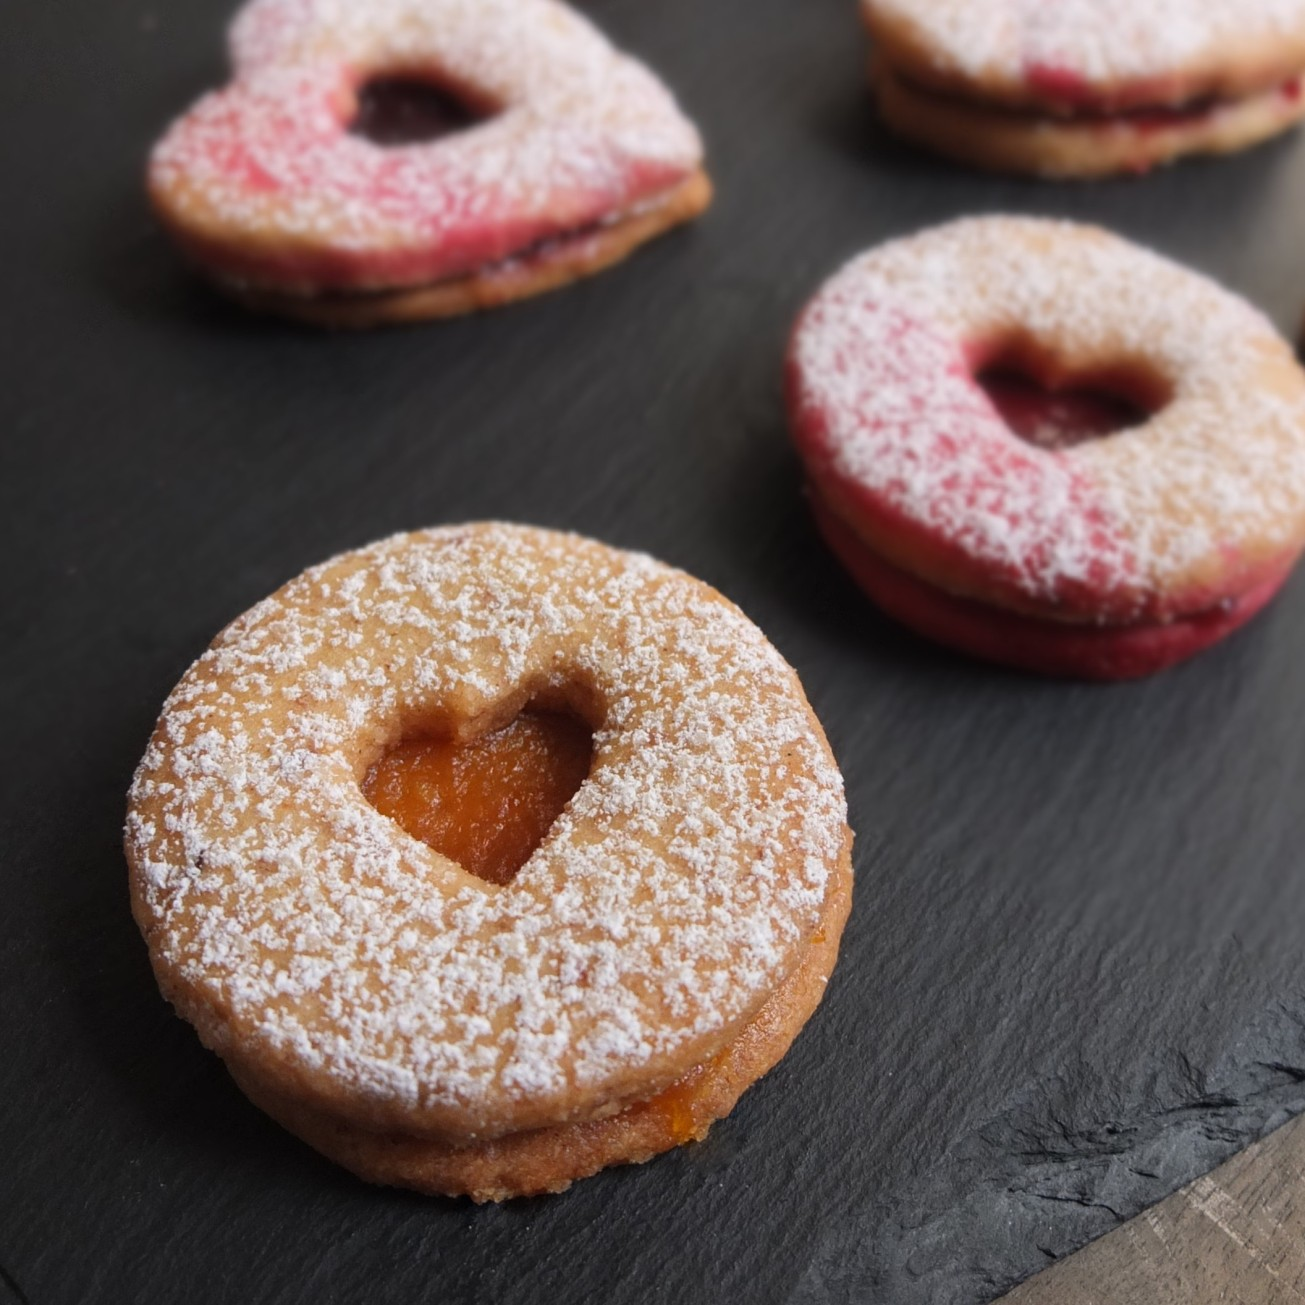 Spiced linzer biscuits - glutenfree or not...